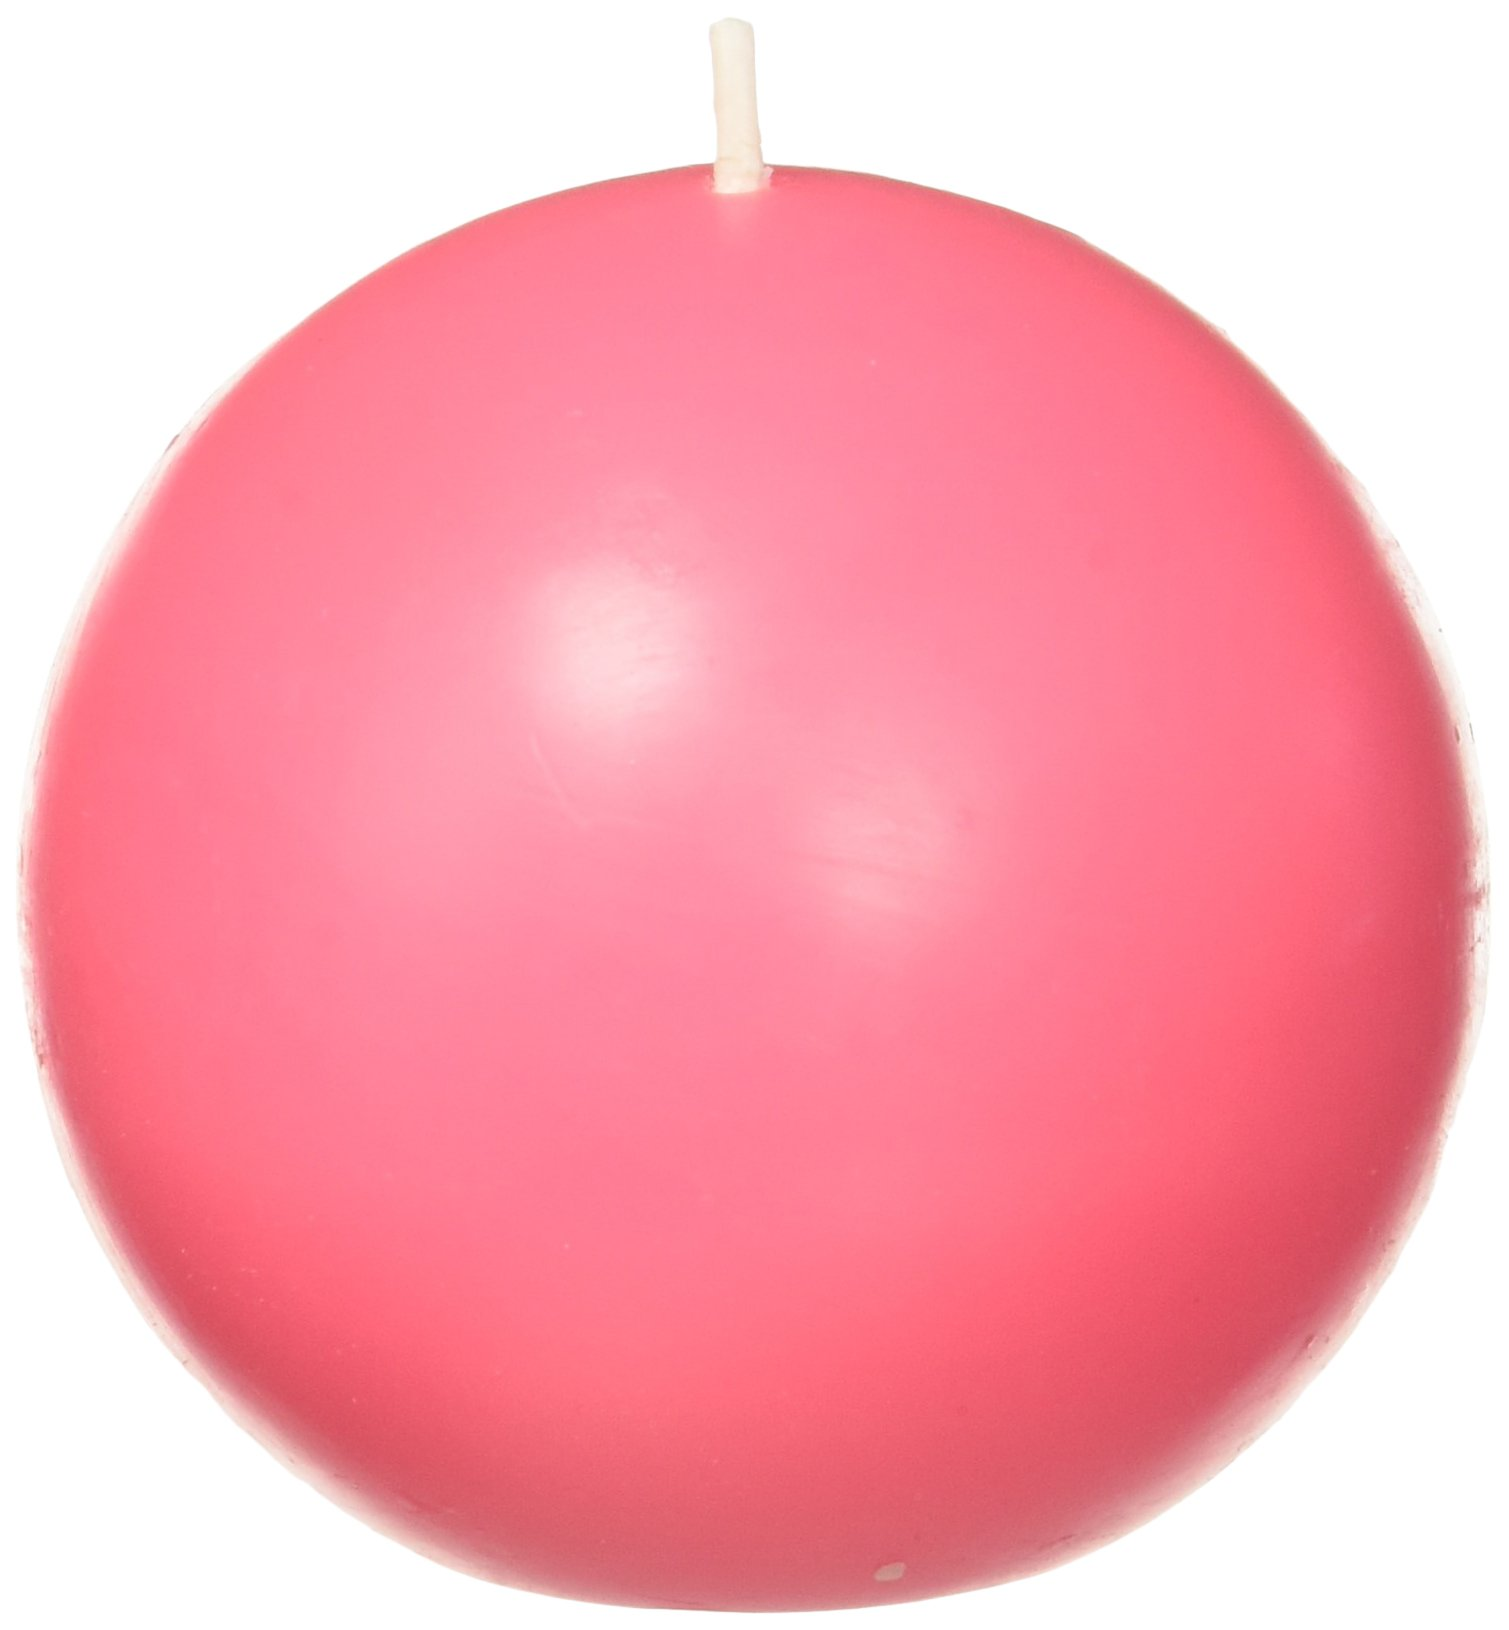 Zest Candle 6-Piece Ball Candles, 3-Inch, Hot Pink by Zest Candle